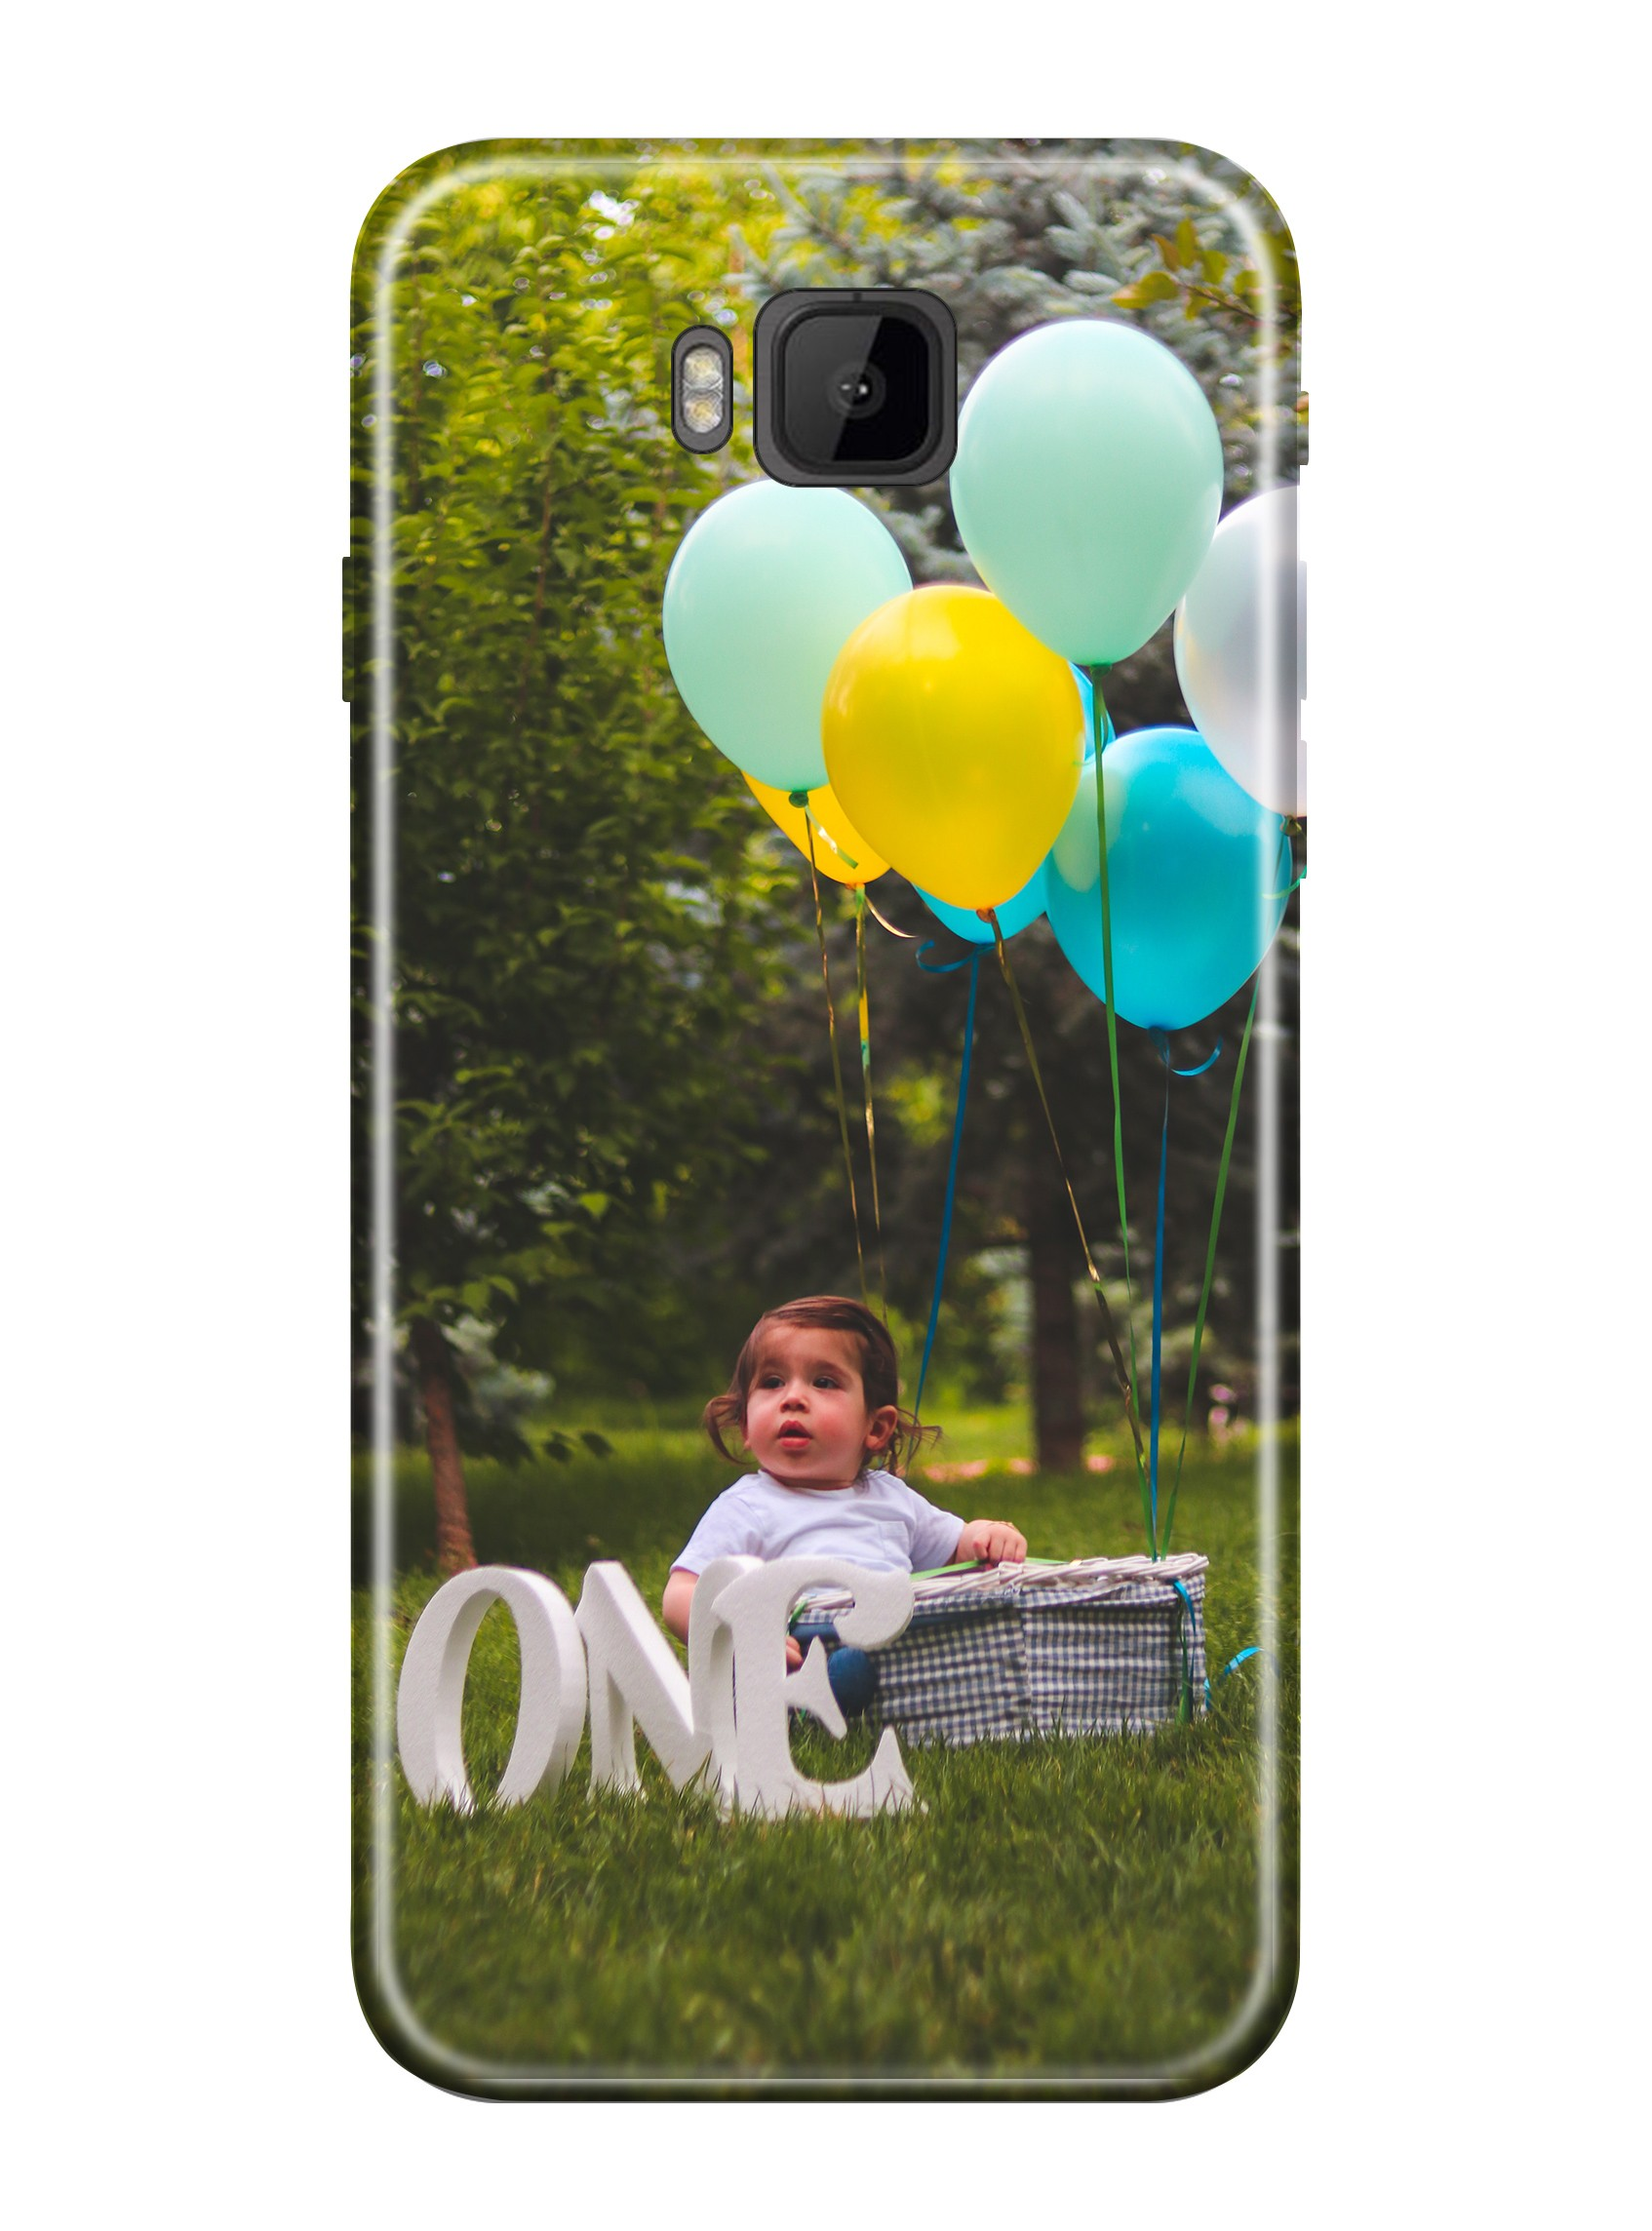 Personalised Case for HTC One M9